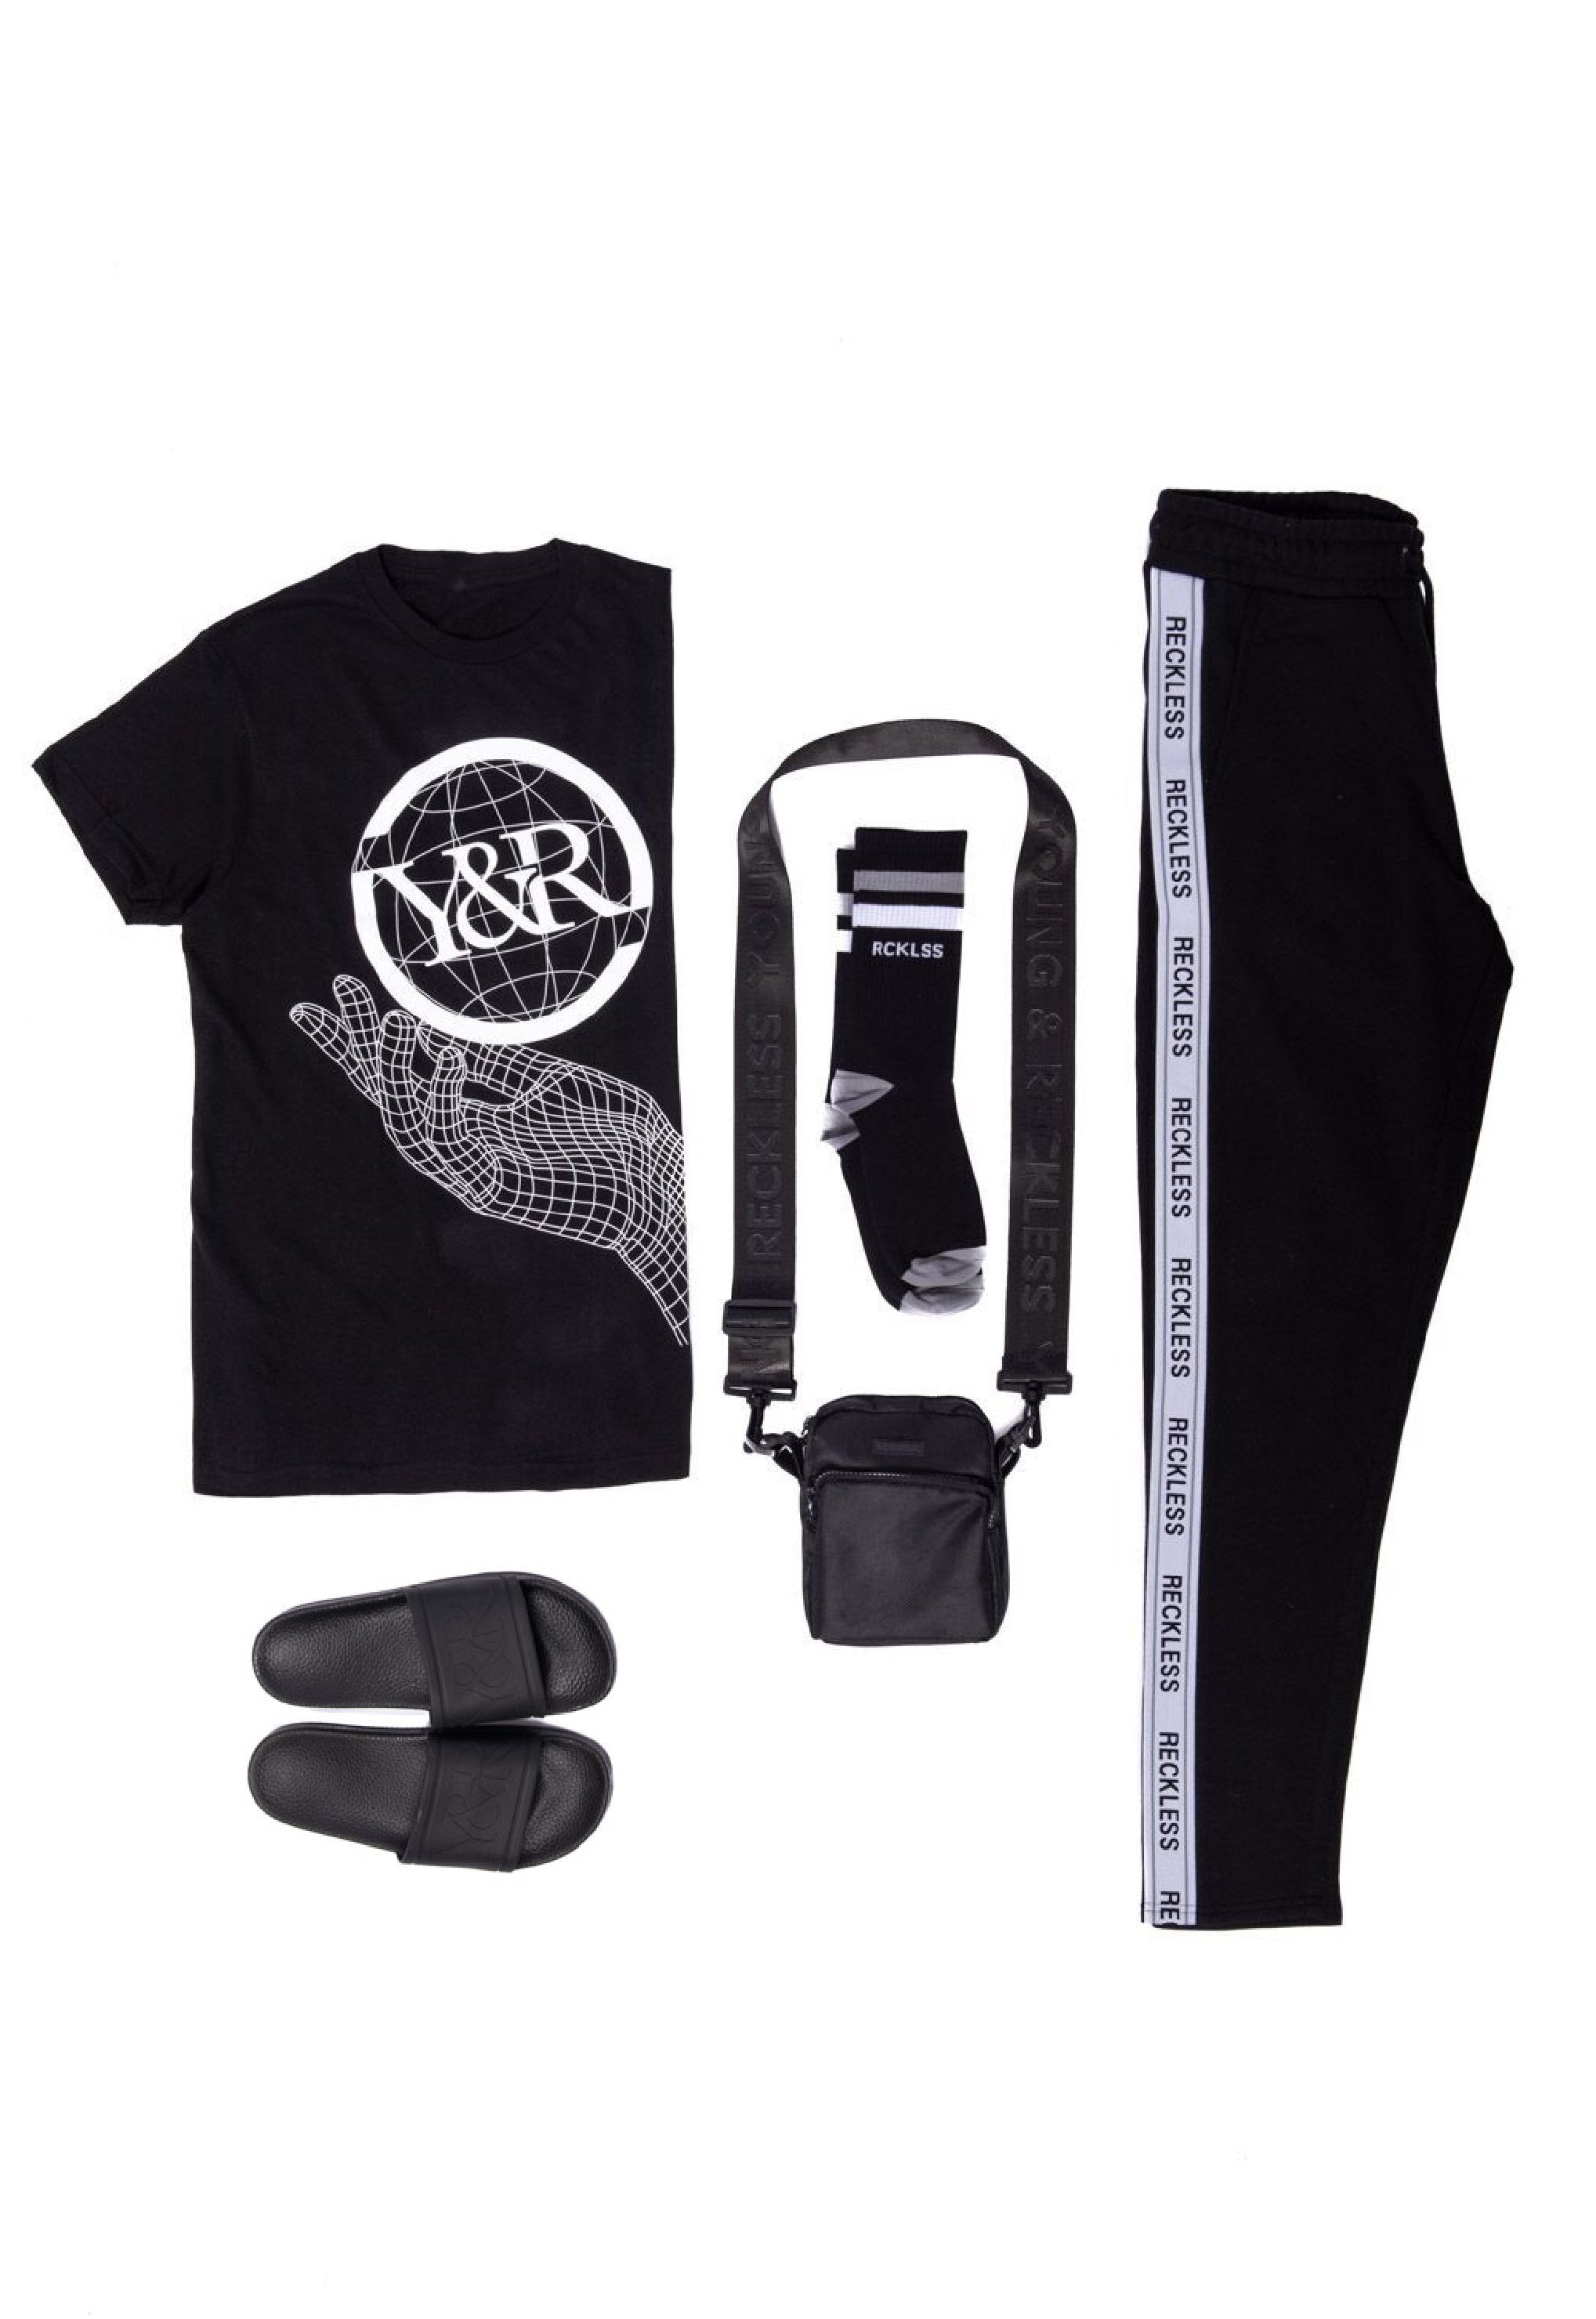 new arrival 6dd65 66172 Young and Reckless Mens - Bundles Grayscale Bundle - Black ...